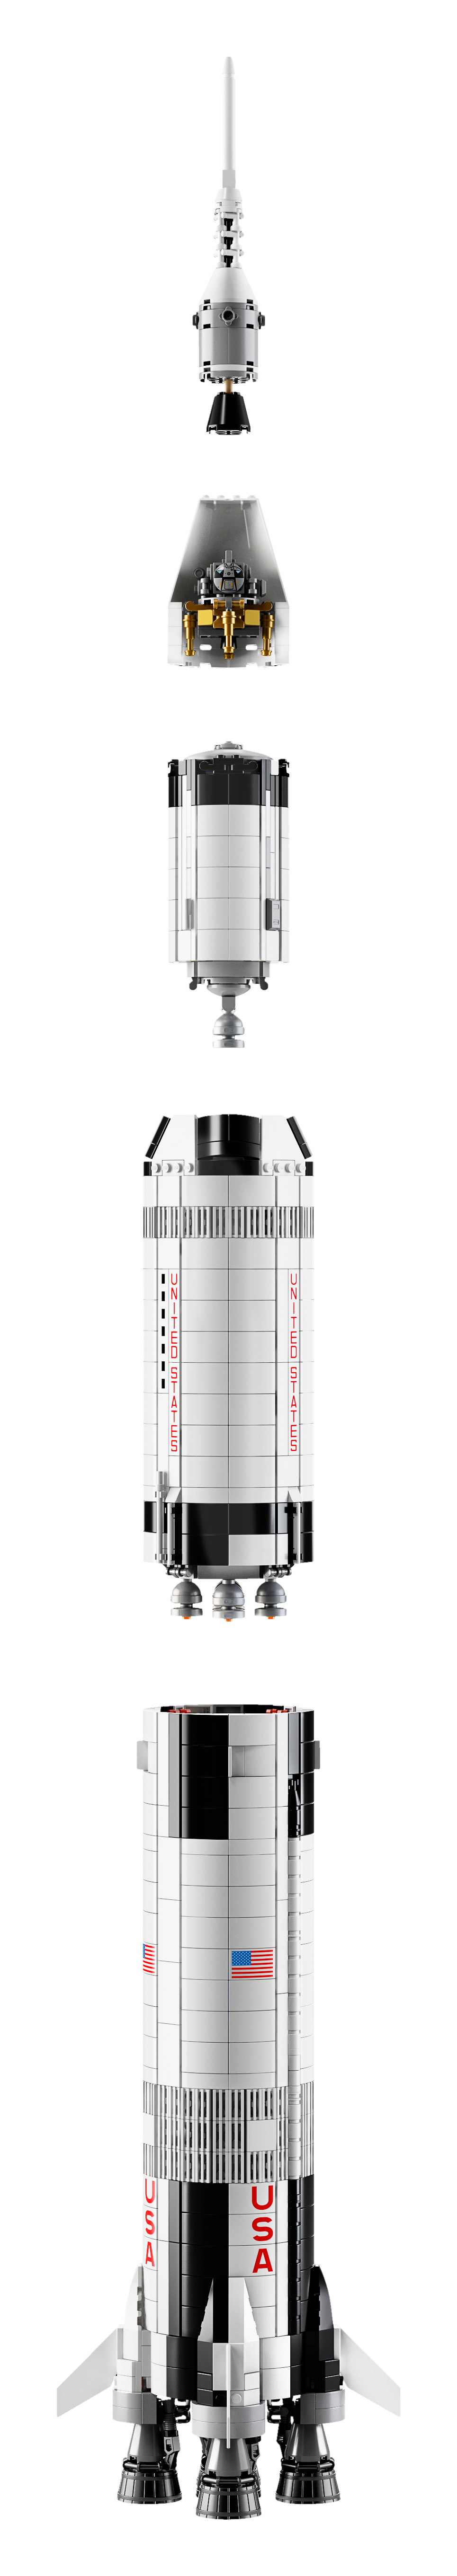 lego apollo rocket instructions